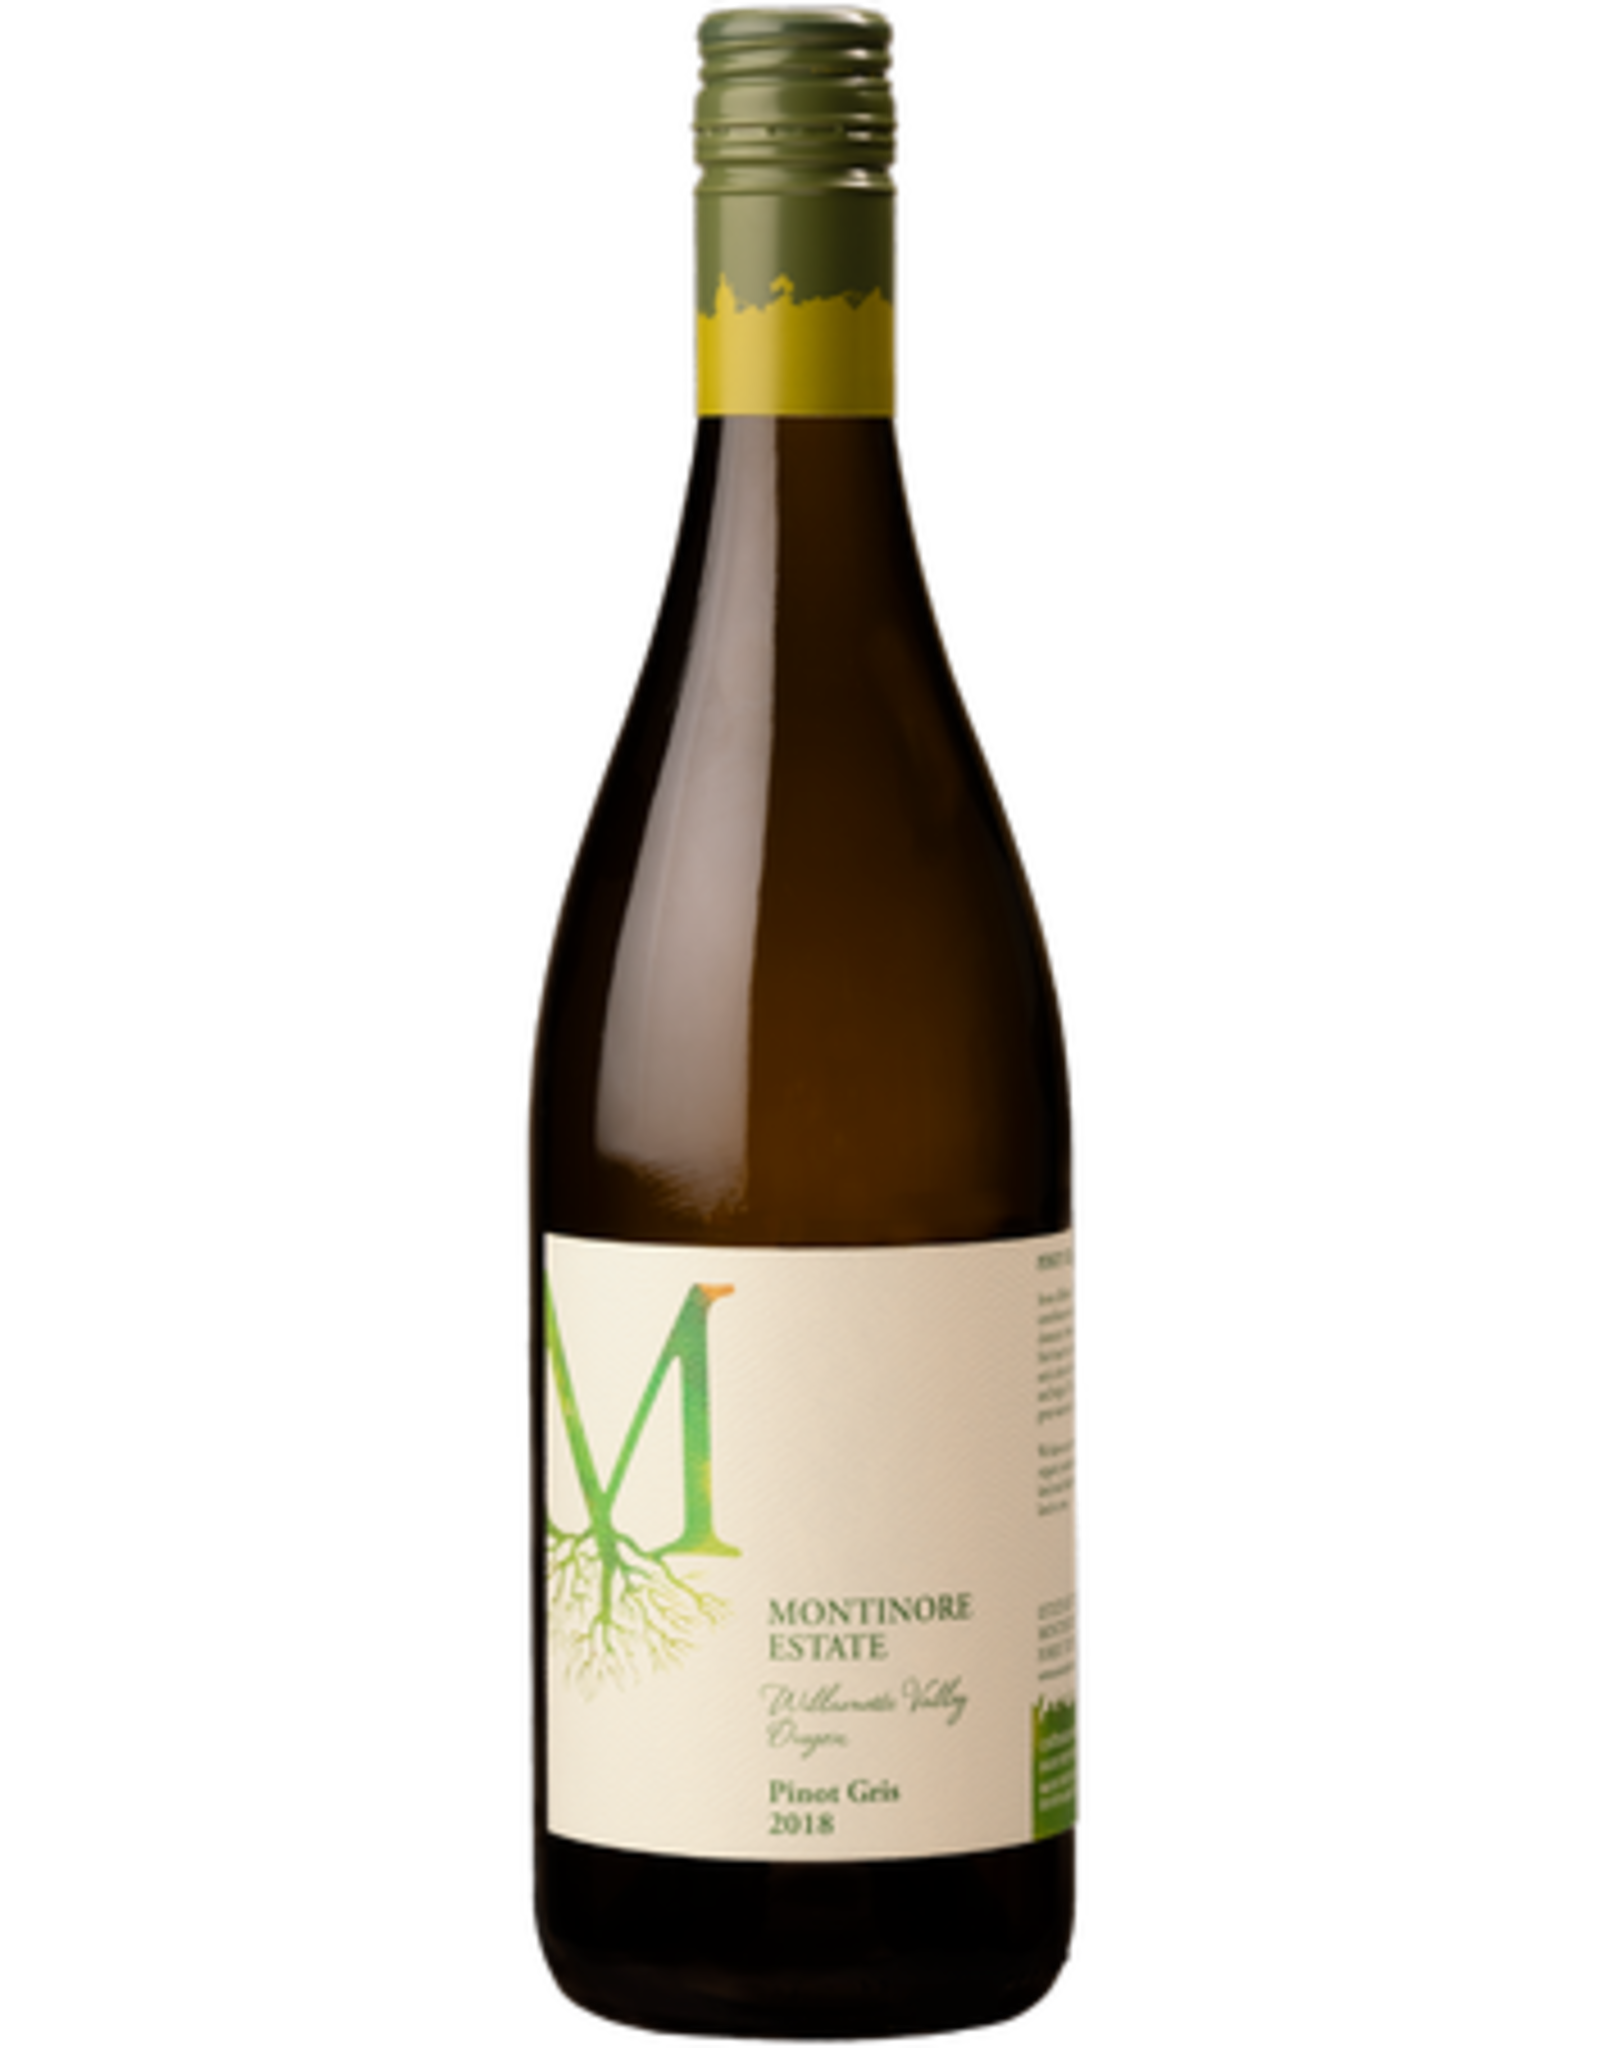 Montinore Pinot Gris